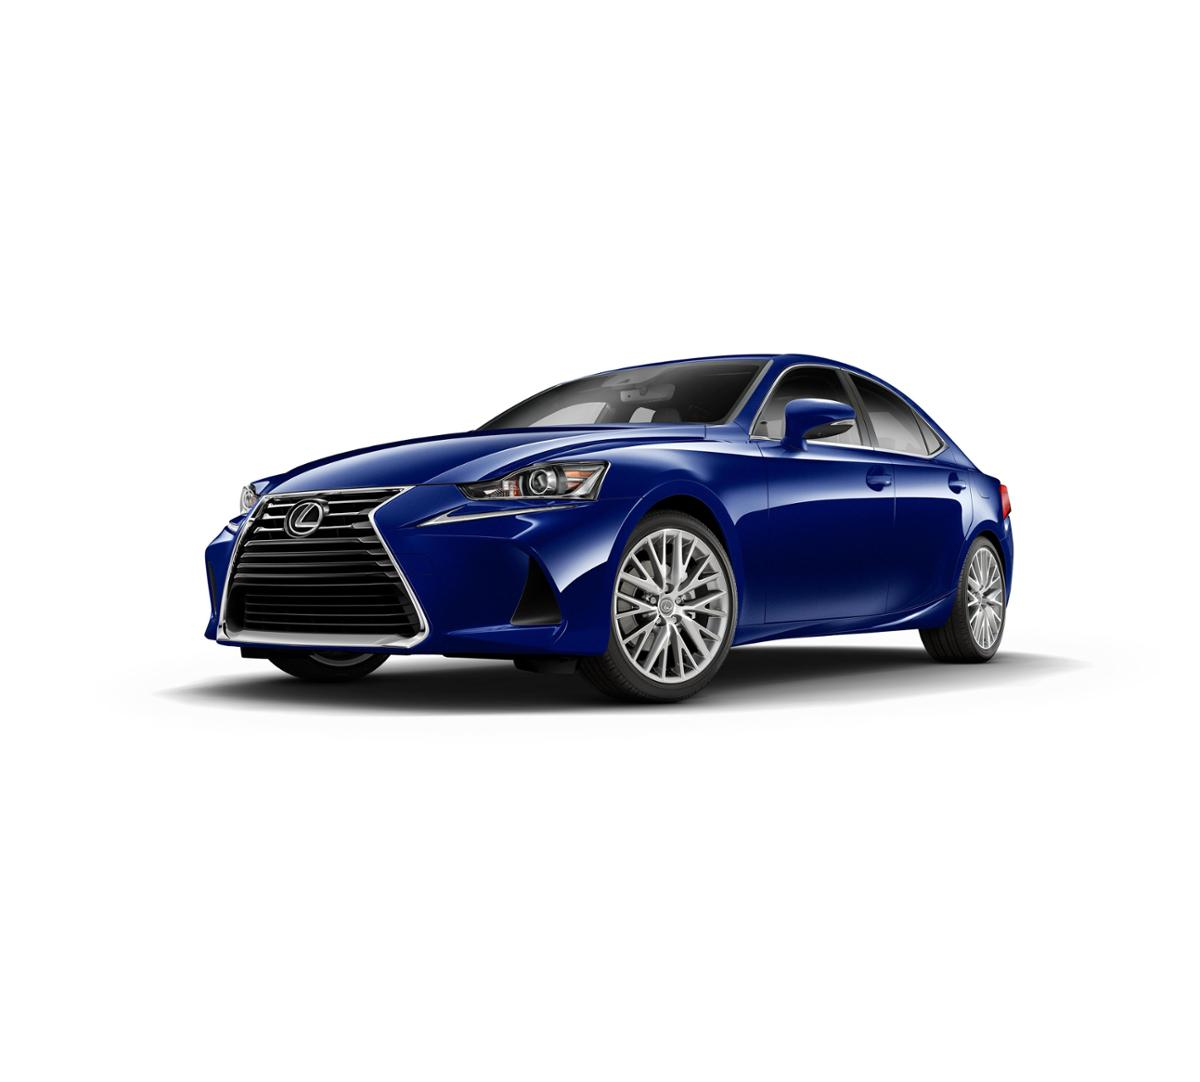 2017 Lexus IS Turbo Vehicle Photo in Houston, TX 77074